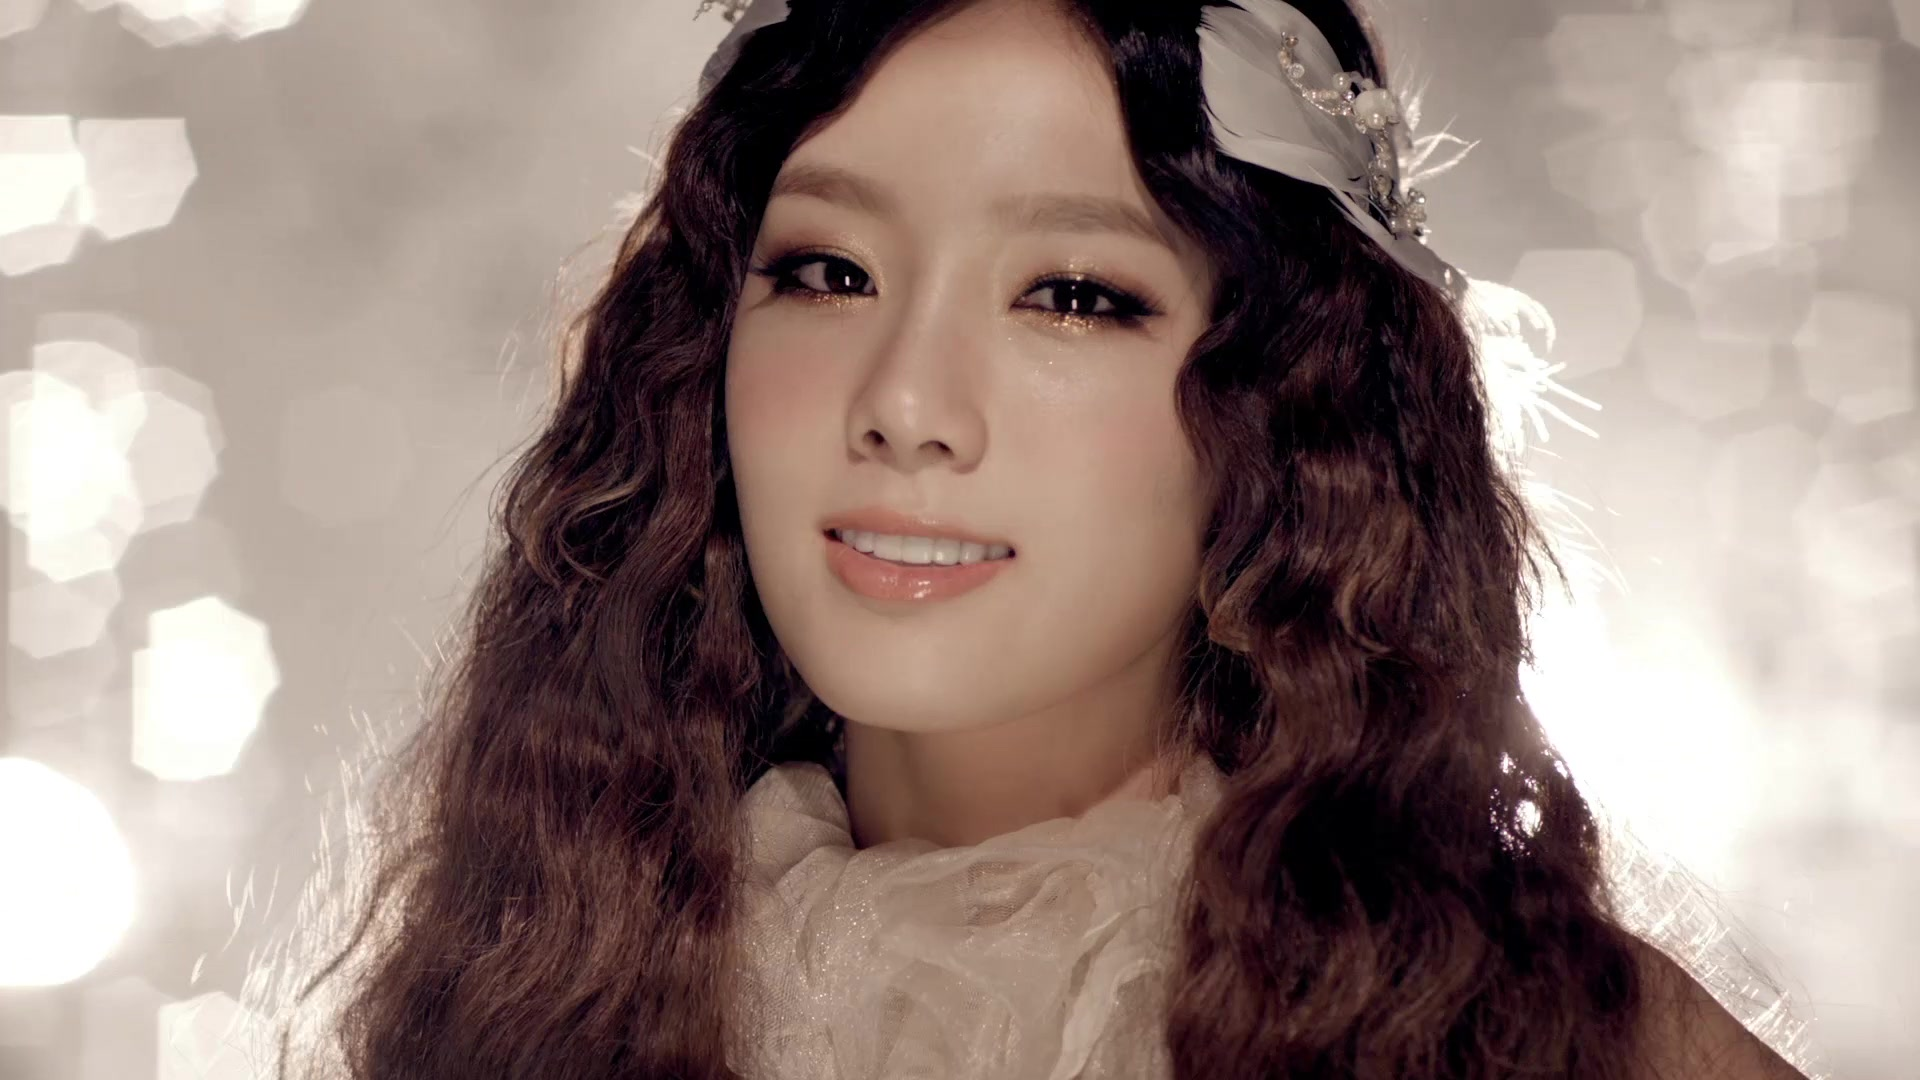 The New Elizabethans: Contemorary Elizabethan Look - Kim ... Taeyeon The Boys